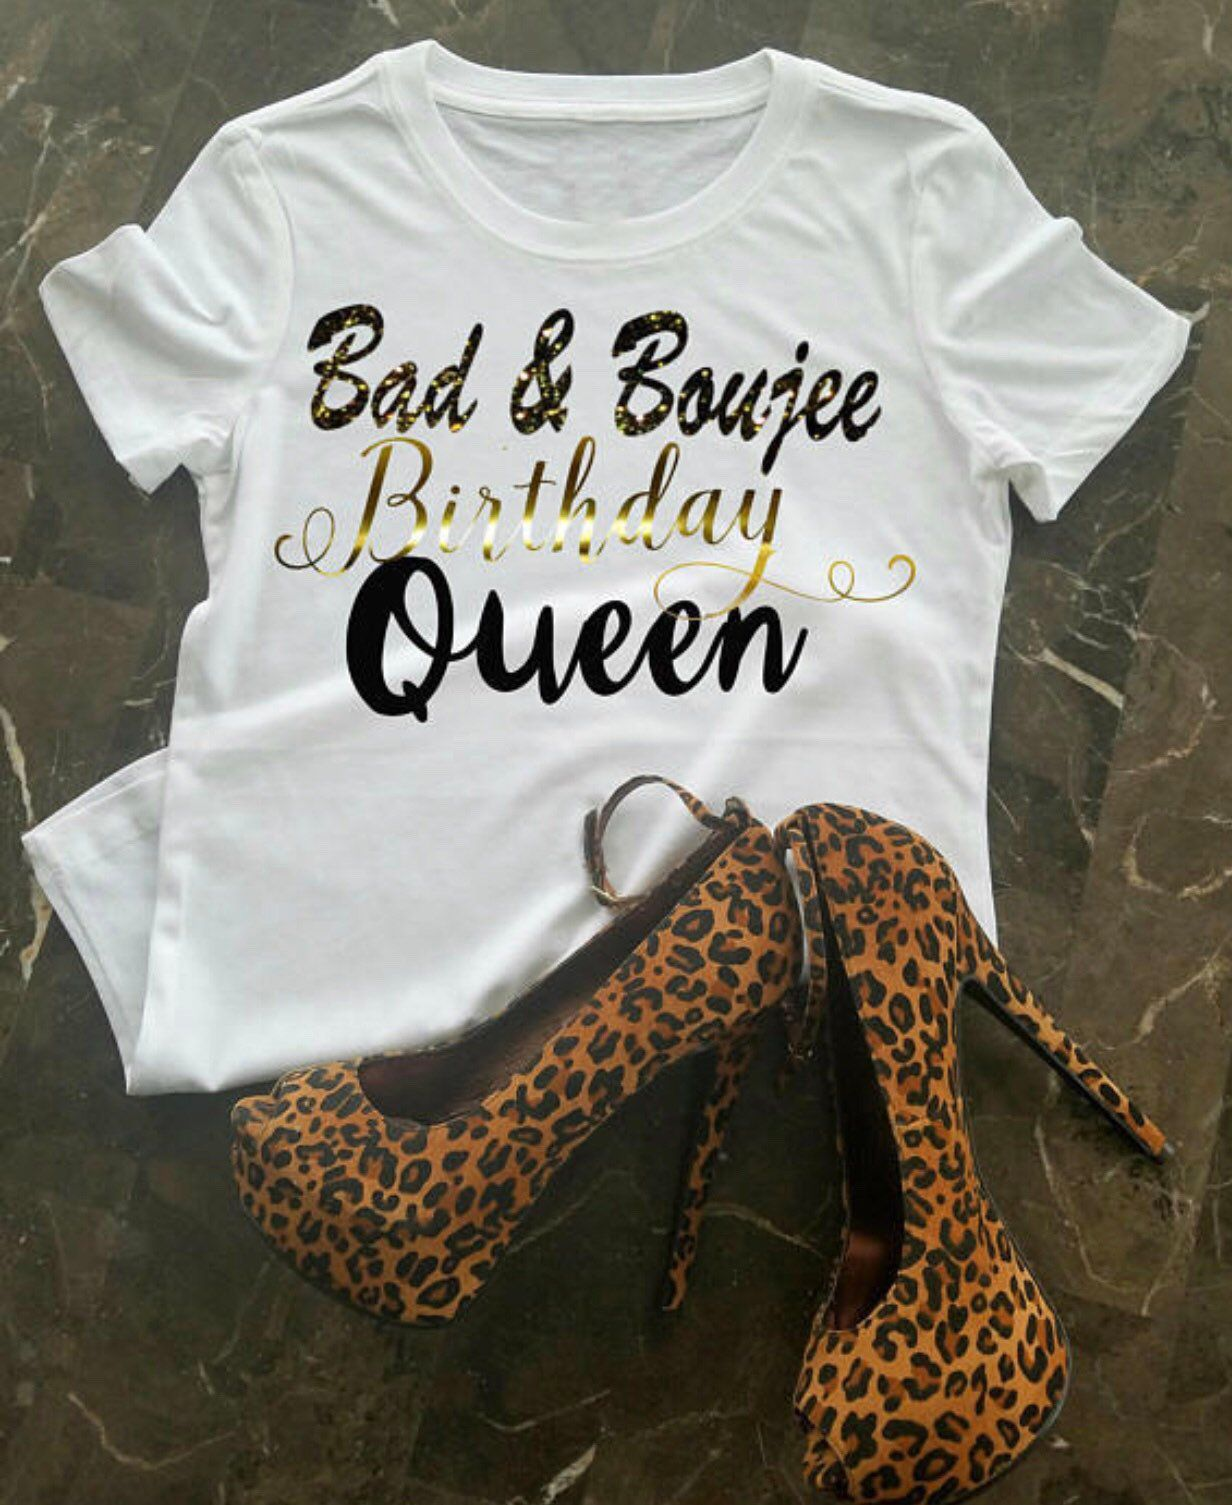 735dcdad Excited to share this item from my #etsy shop: Birthday T-Shirt, Bad &  Boujee Birthday Shirt, Birthday Queen Shirt, Birthday Shirt For Women,  Birthday Girl, ...